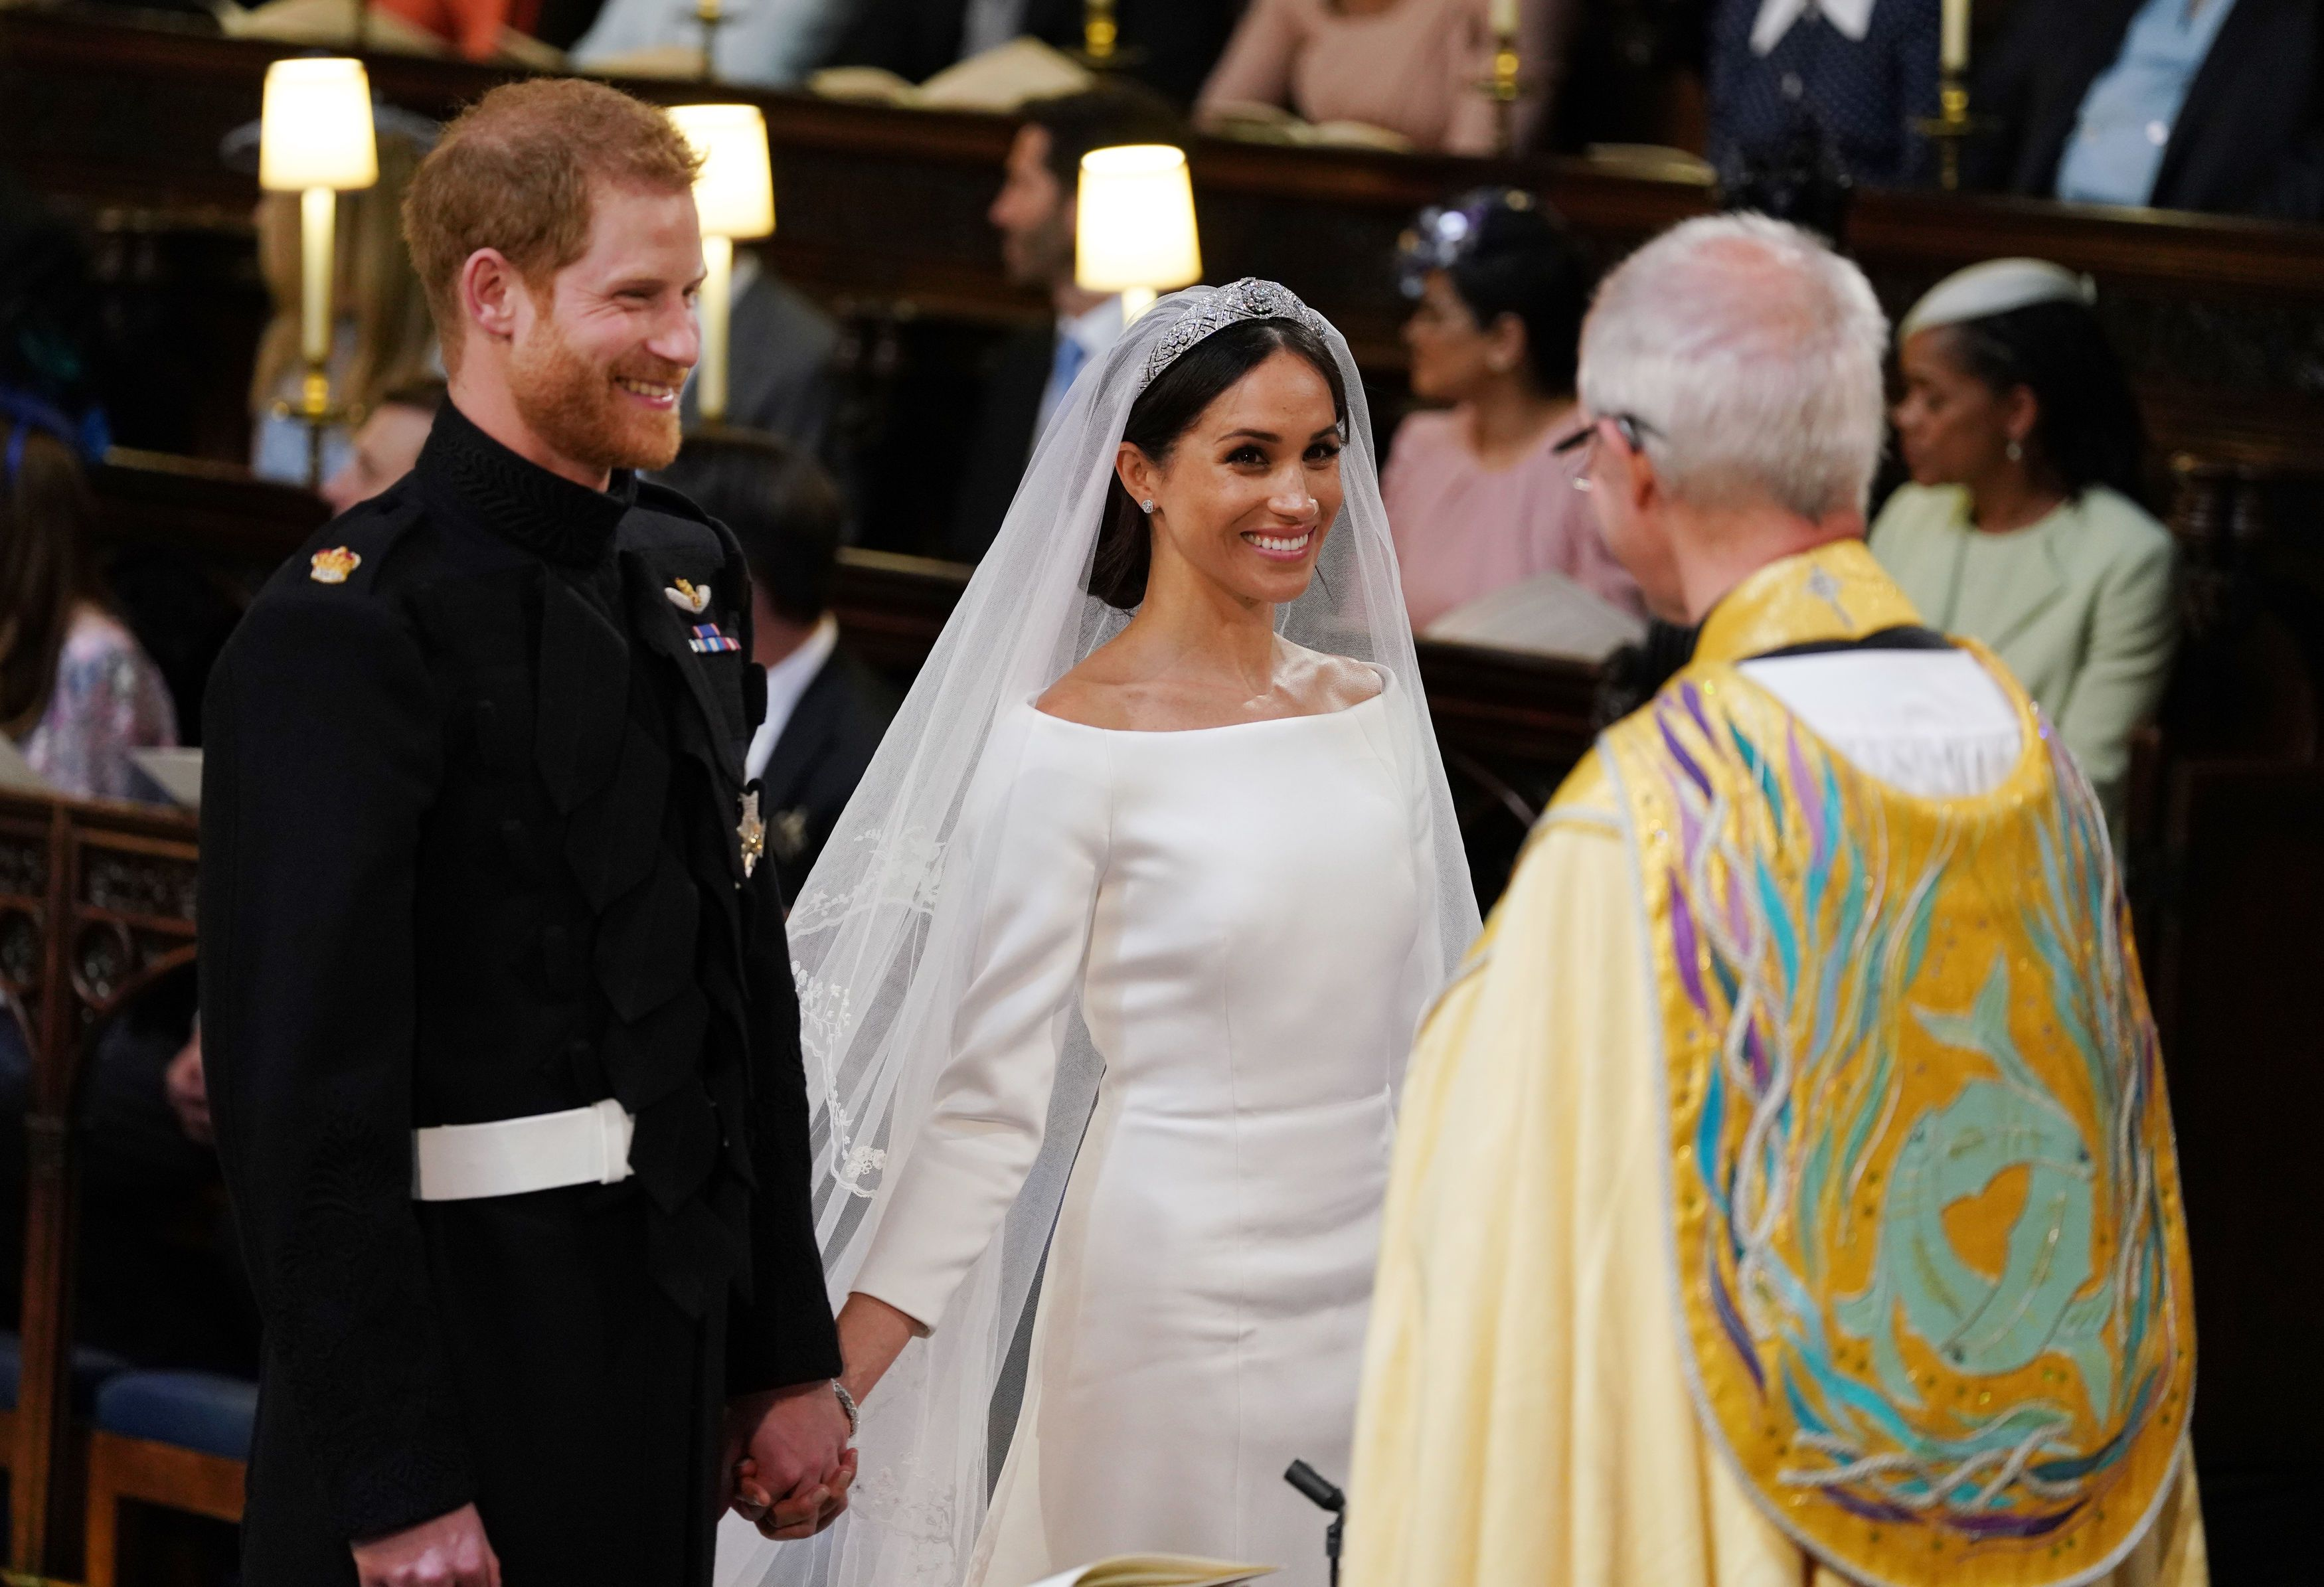 The Best Meghan Markle Prince Harry Wedding Guests